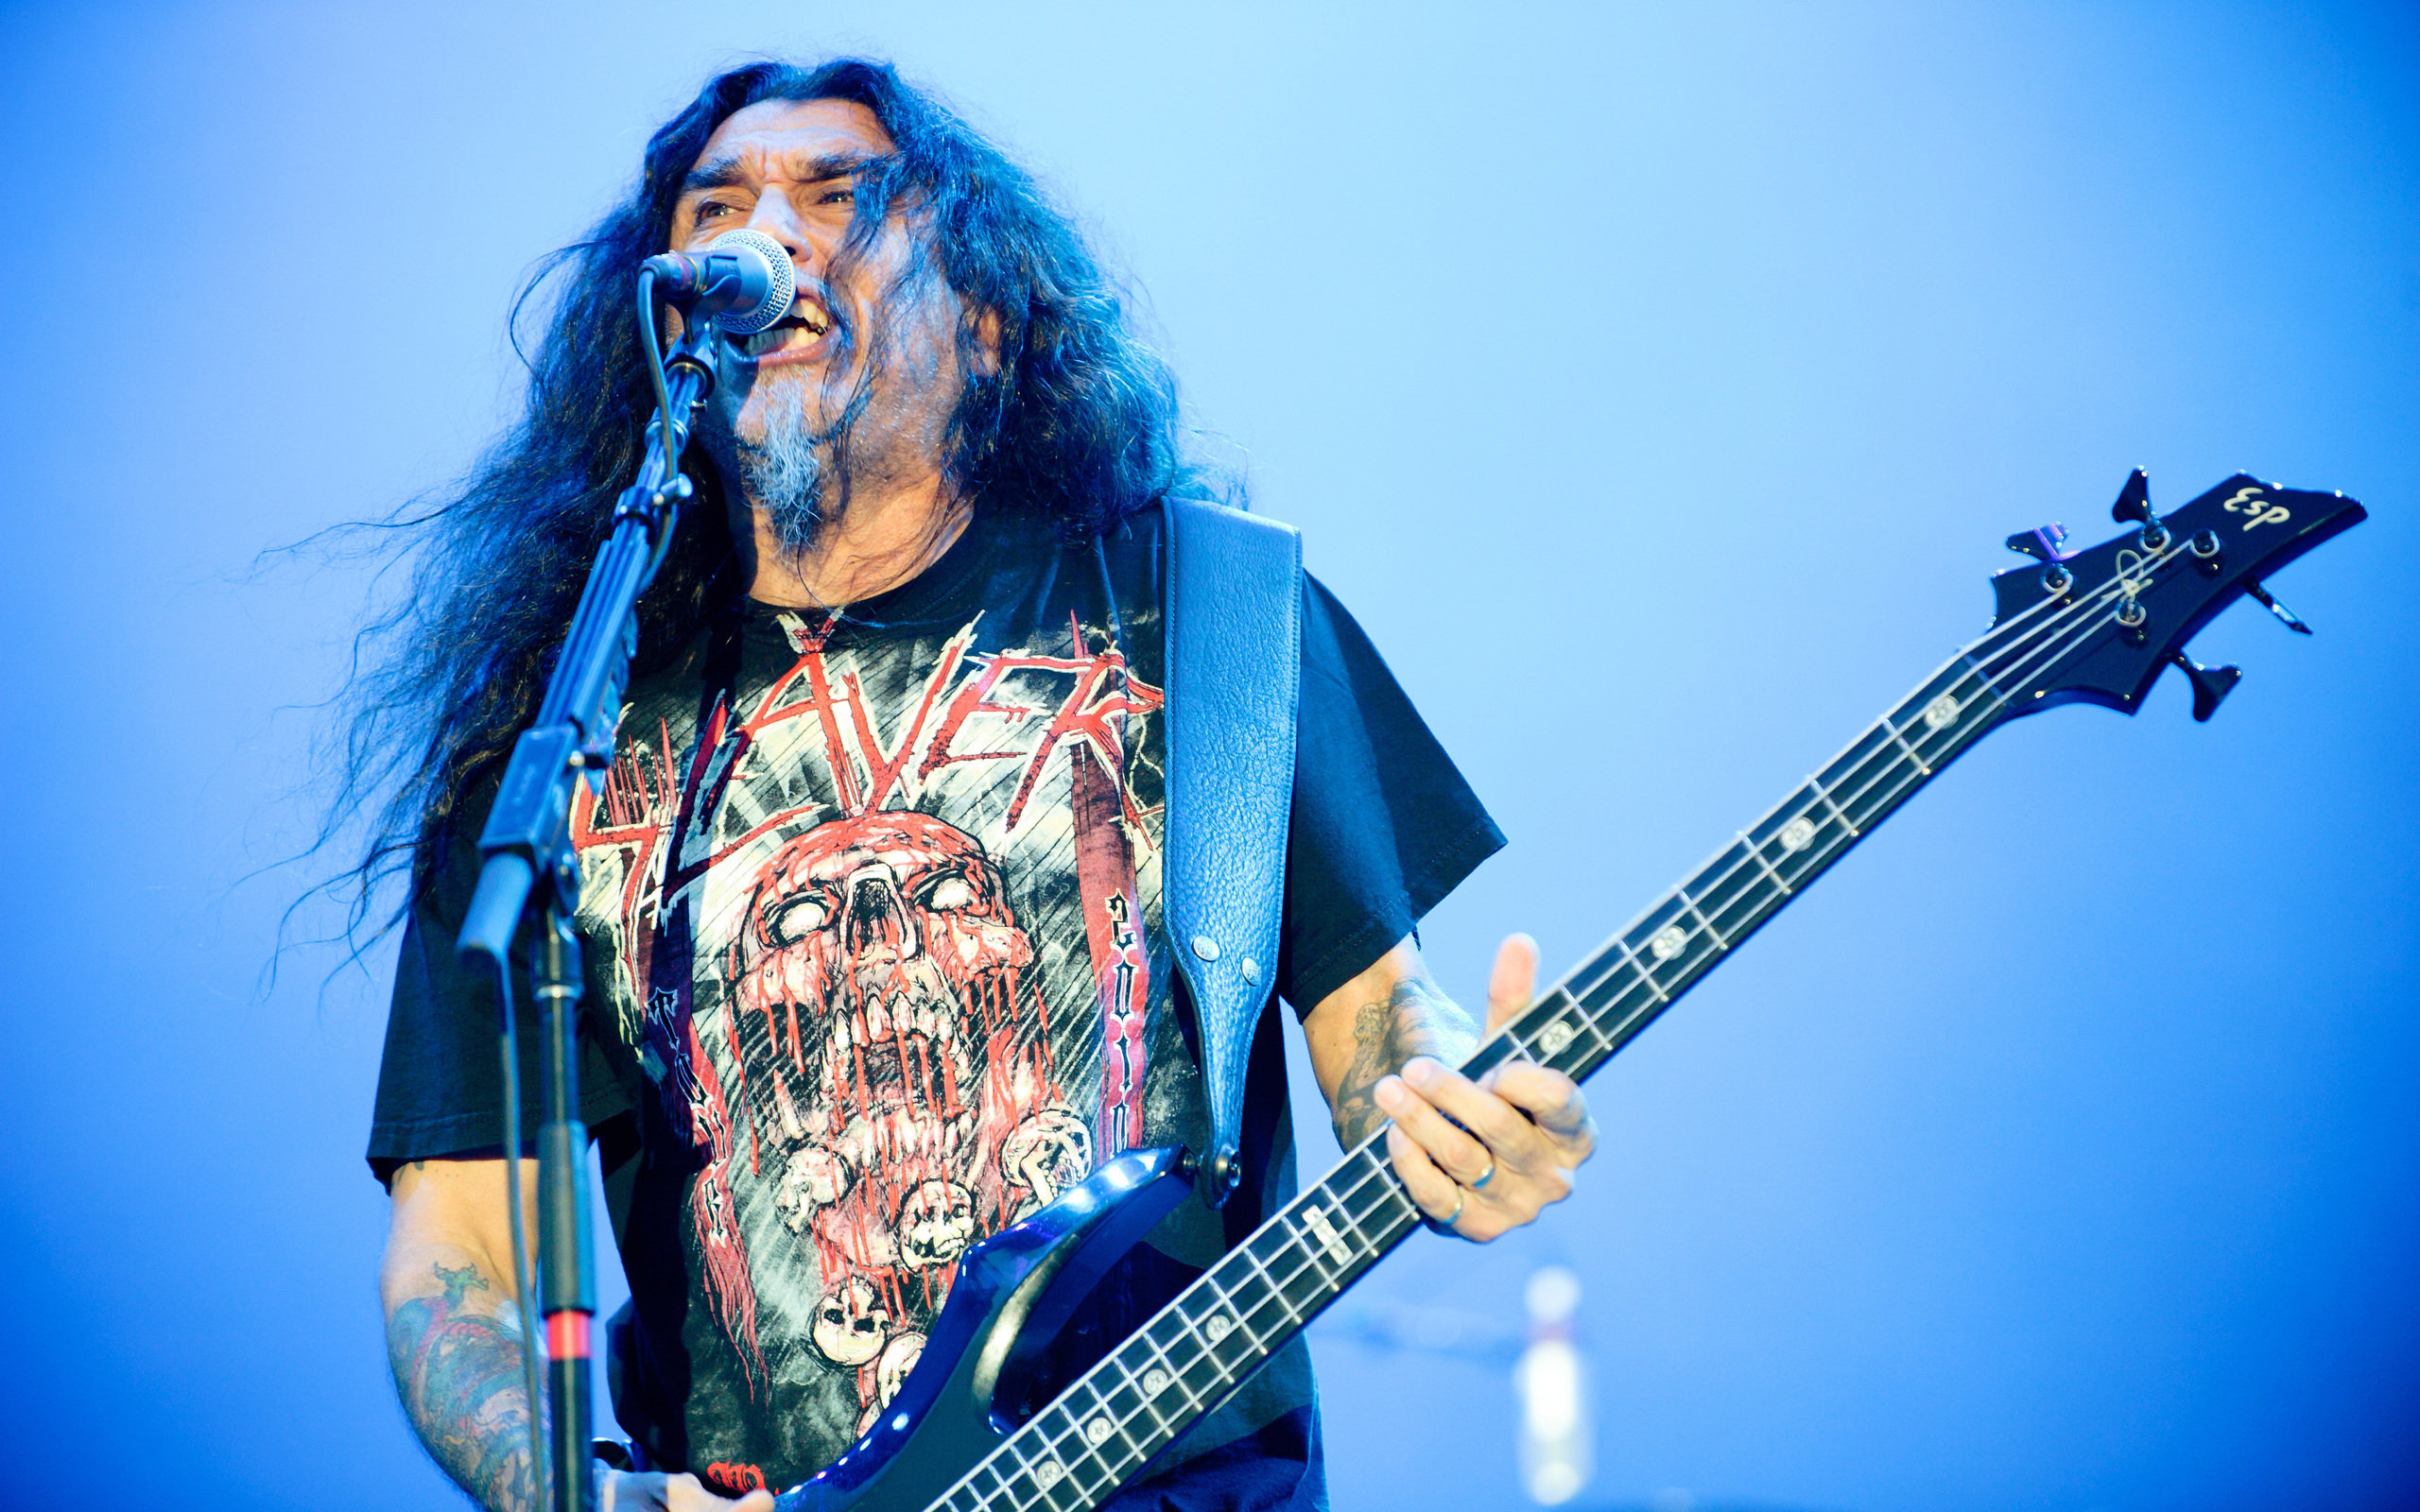 Free download Slayer wallpaper ID:246763 hd 2560x1600 for desktop